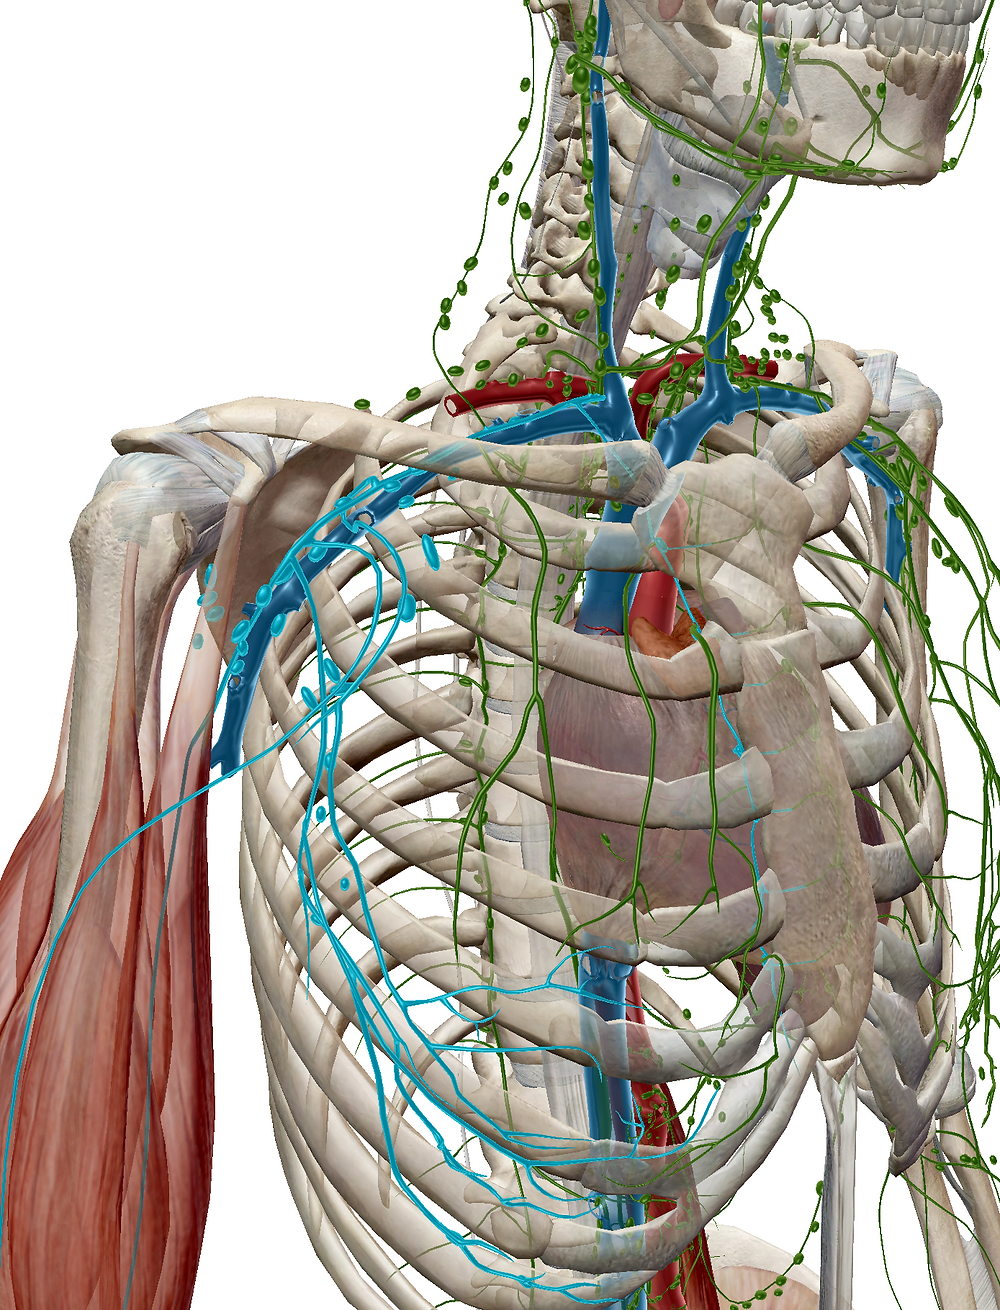 Axillary lymph node highlighted in blue.